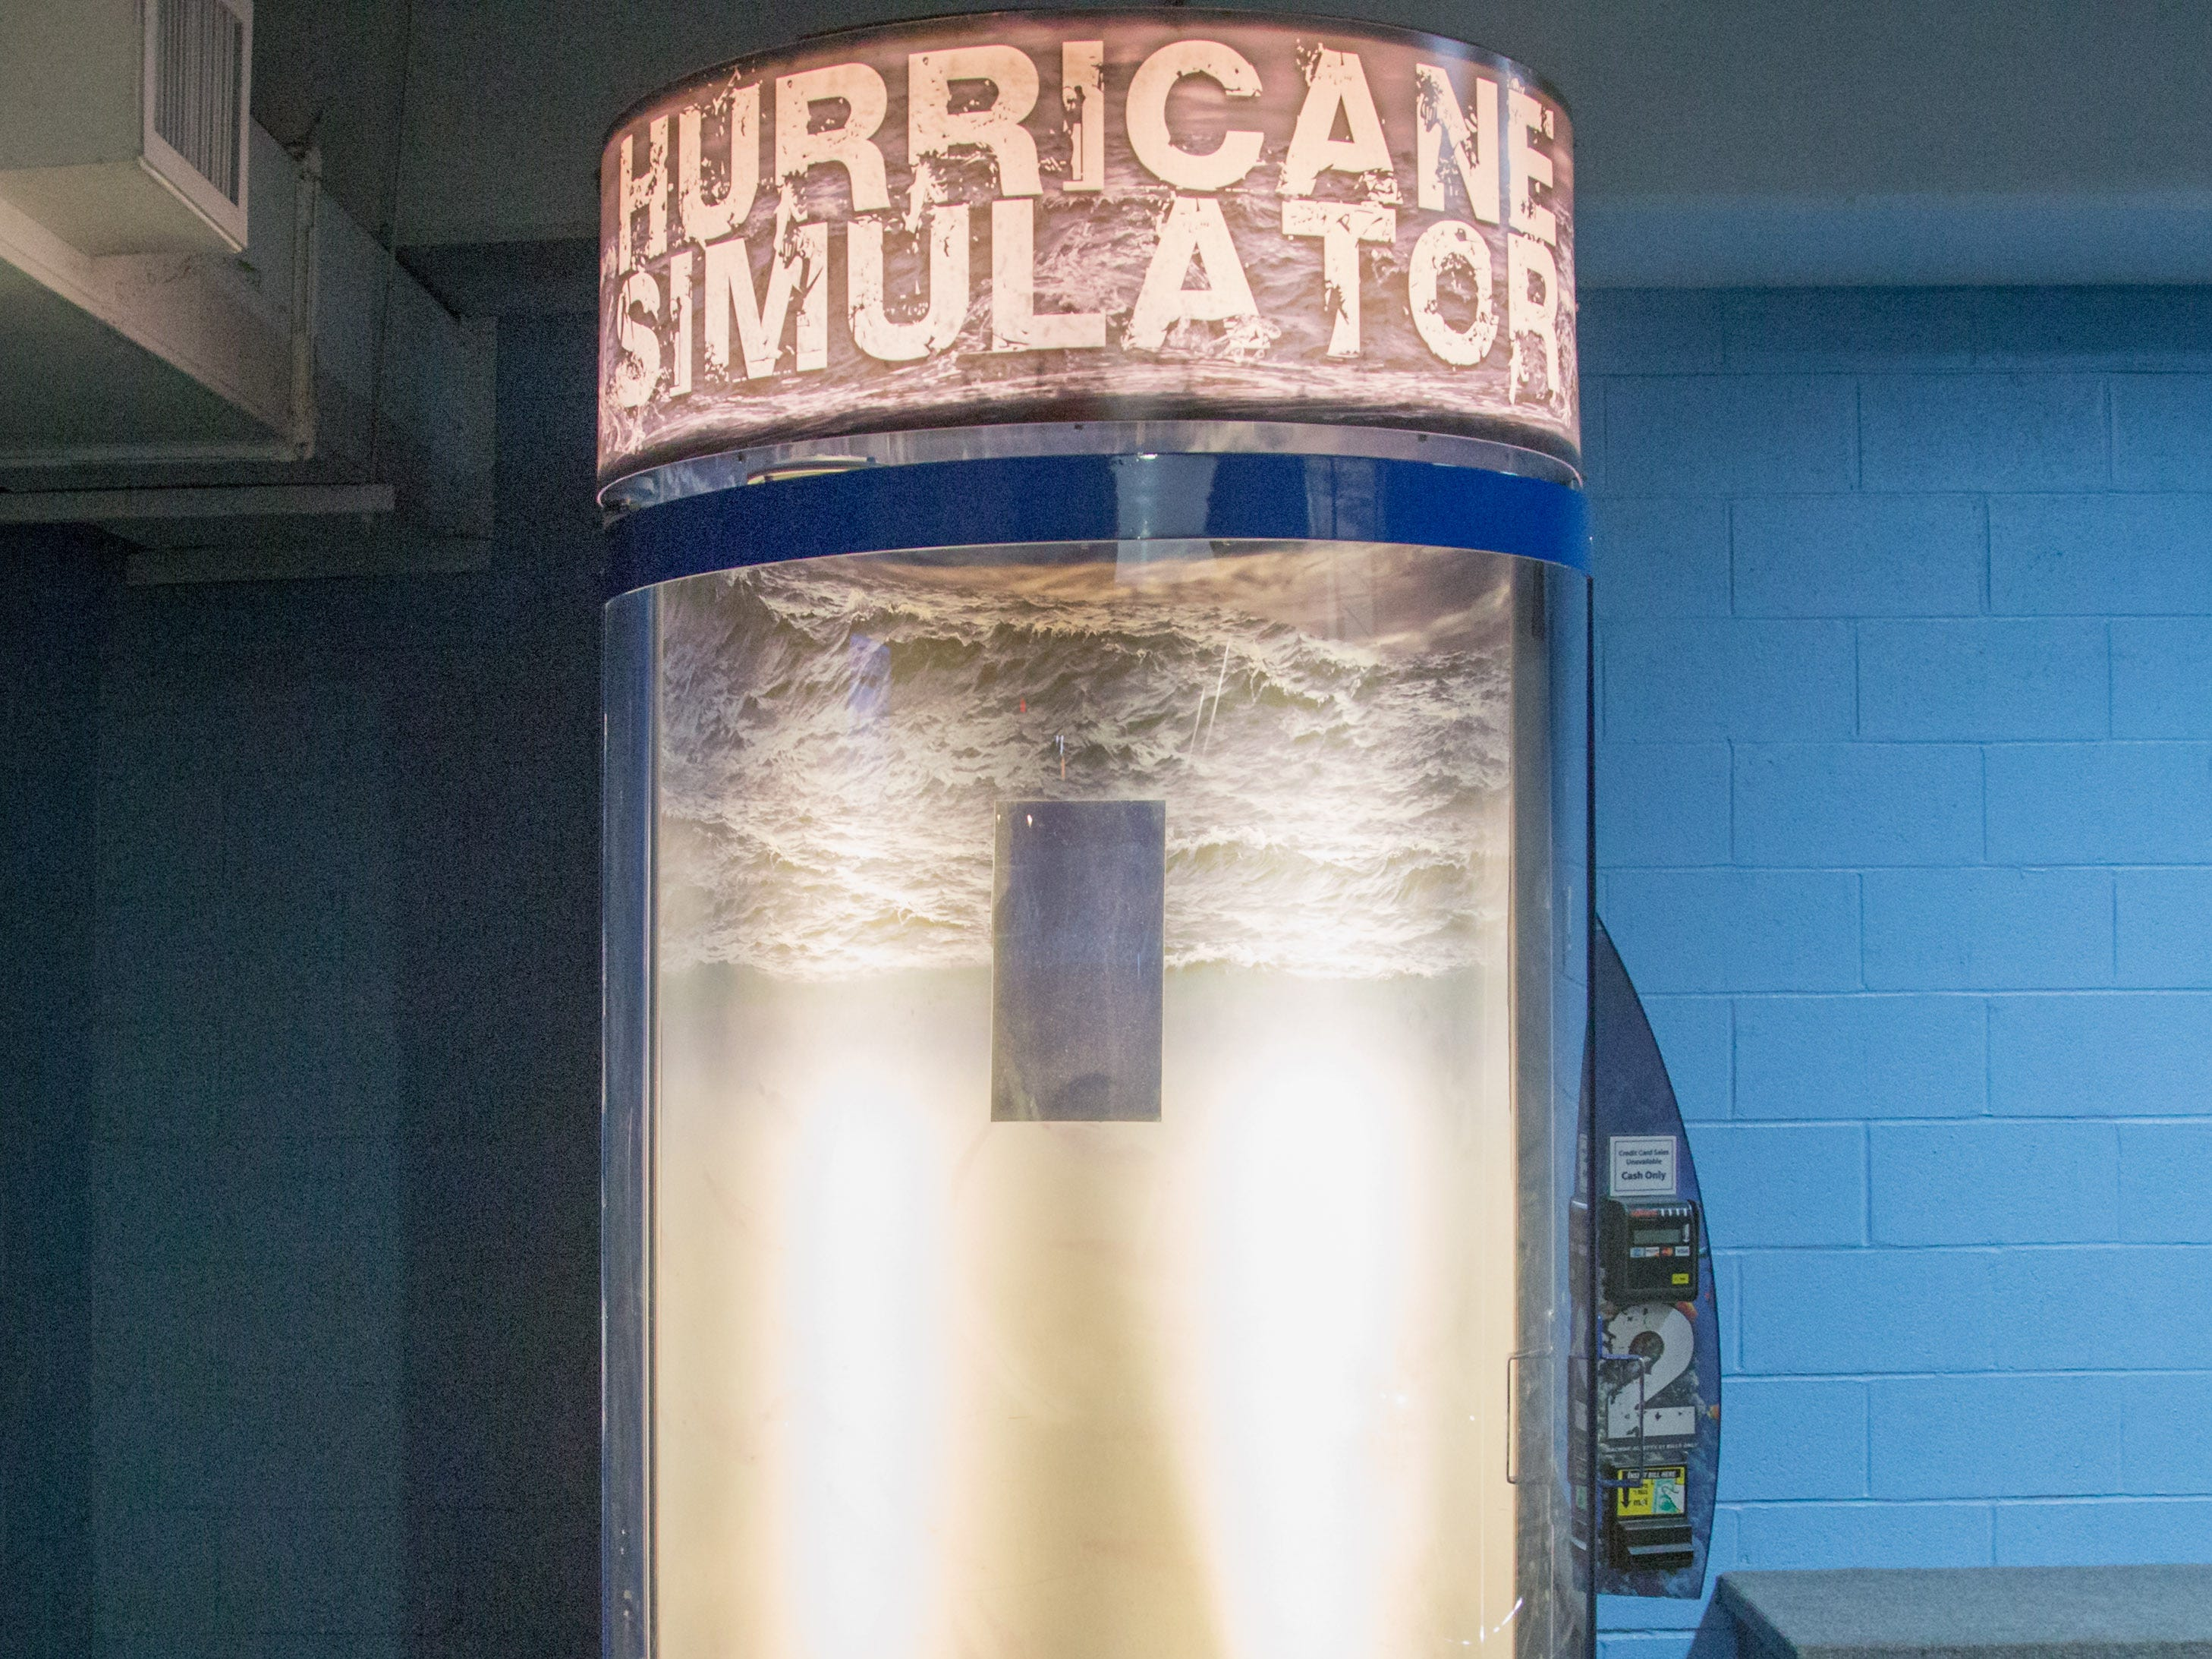 At the North Carolina Aquarium at Fort Fisher, just south of Wilmington, you can step into the Hurricane Simulator and experience what a 78 mph gale – the equivalent of a Category 1 hurricane, like Florence – is like.